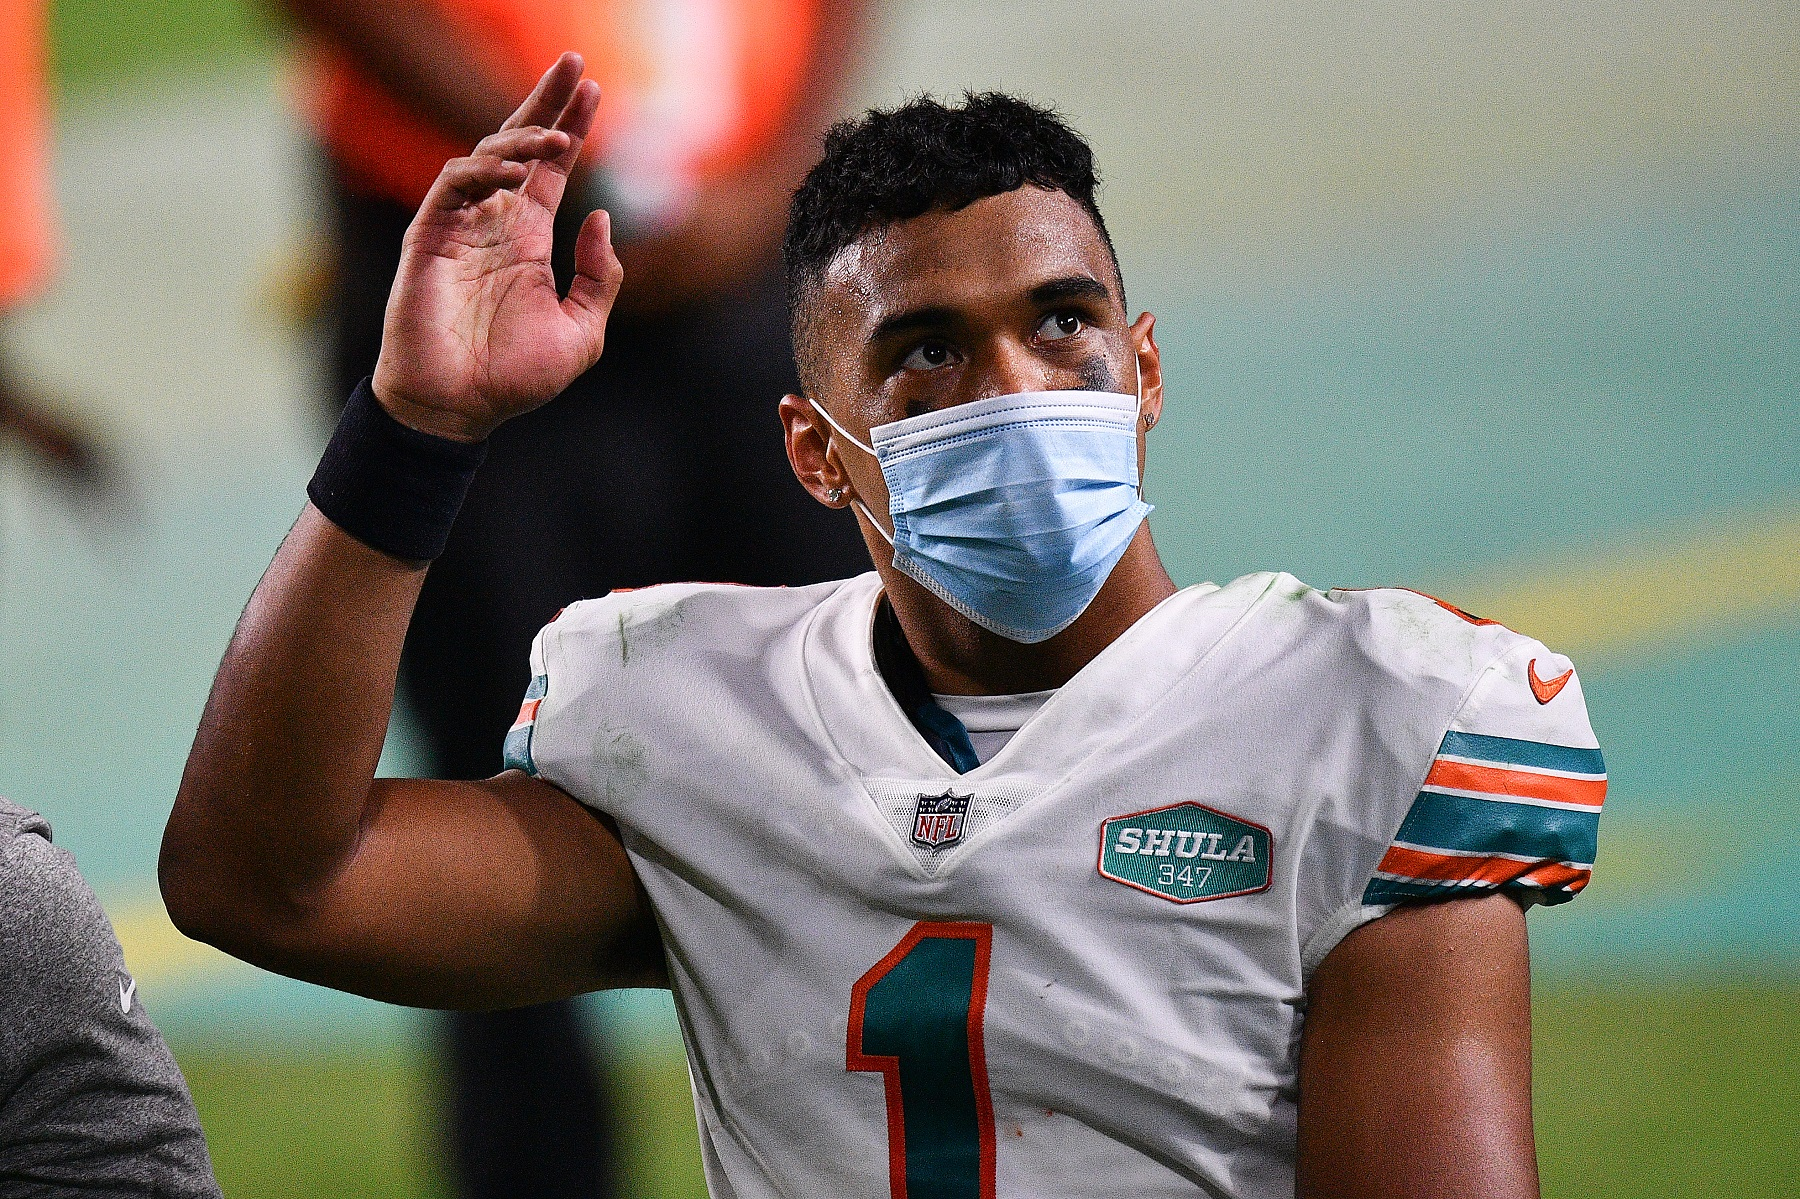 Tua Tagovailoa Is Getting Cocky 3 Starts Into His NFL Career